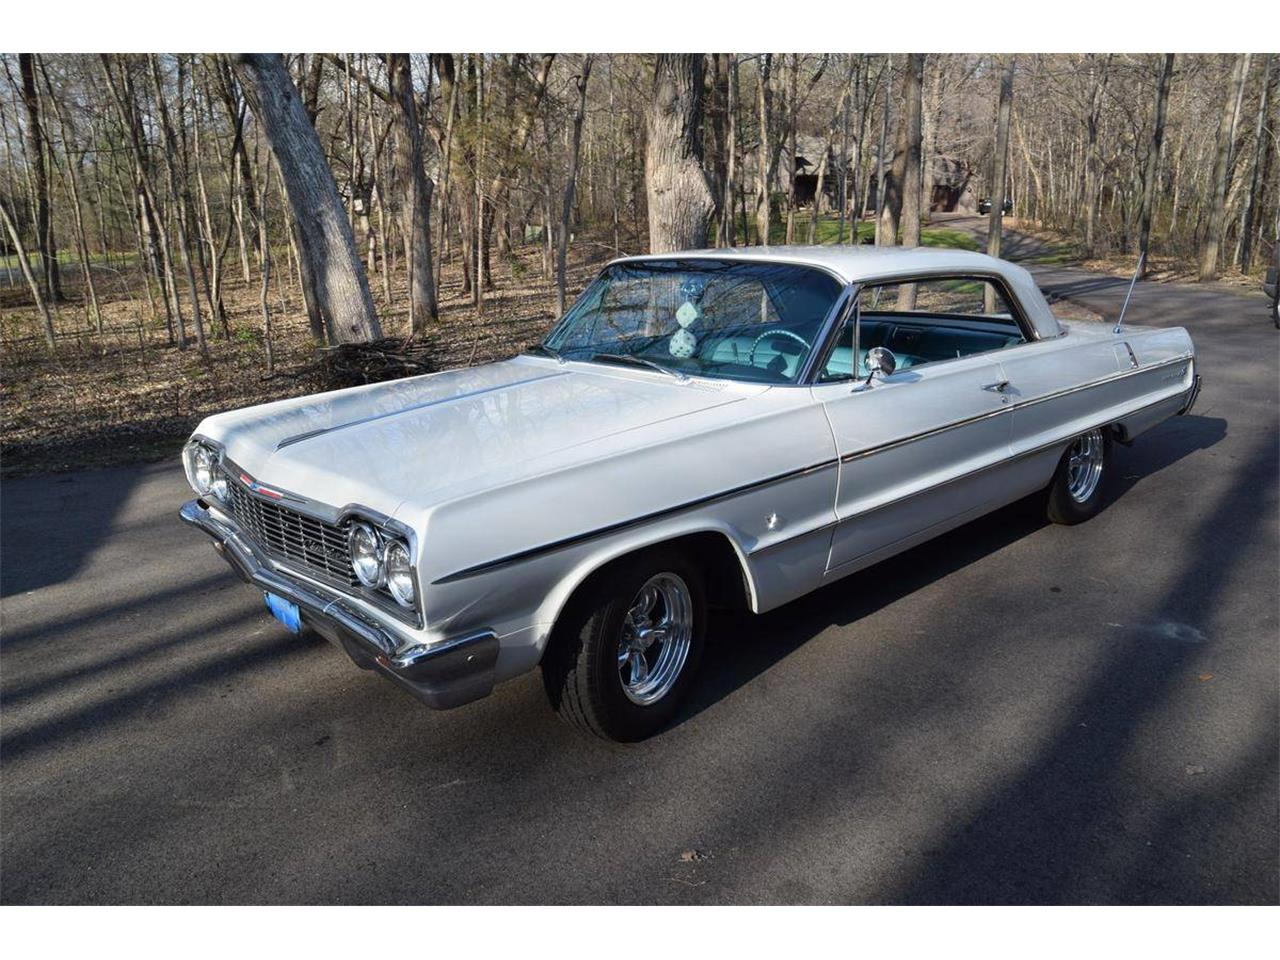 Large Picture of Classic '64 Chevrolet Impala Auction Vehicle Offered by Twin Cities Classic Car Auction - QBUA